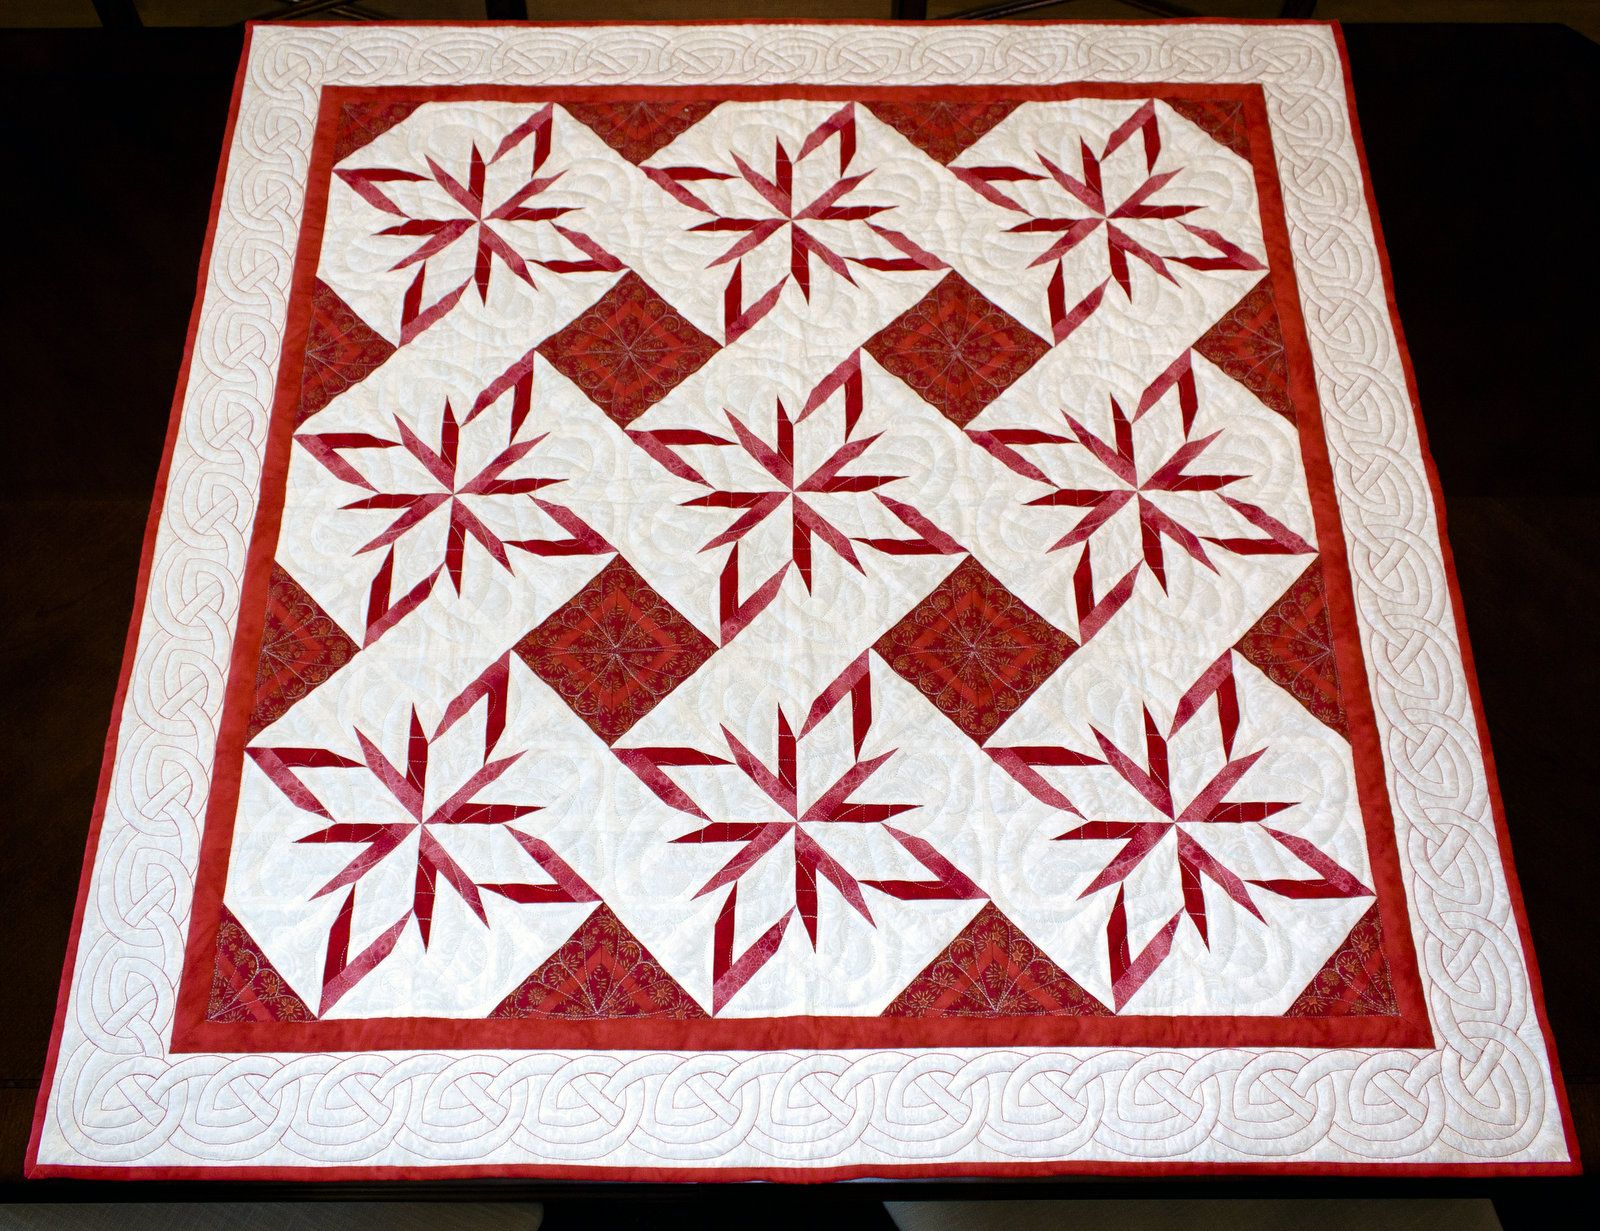 Red and White Star Quilt | Quilt Artistry StudioQuilt Artistry ... : red star quilt - Adamdwight.com